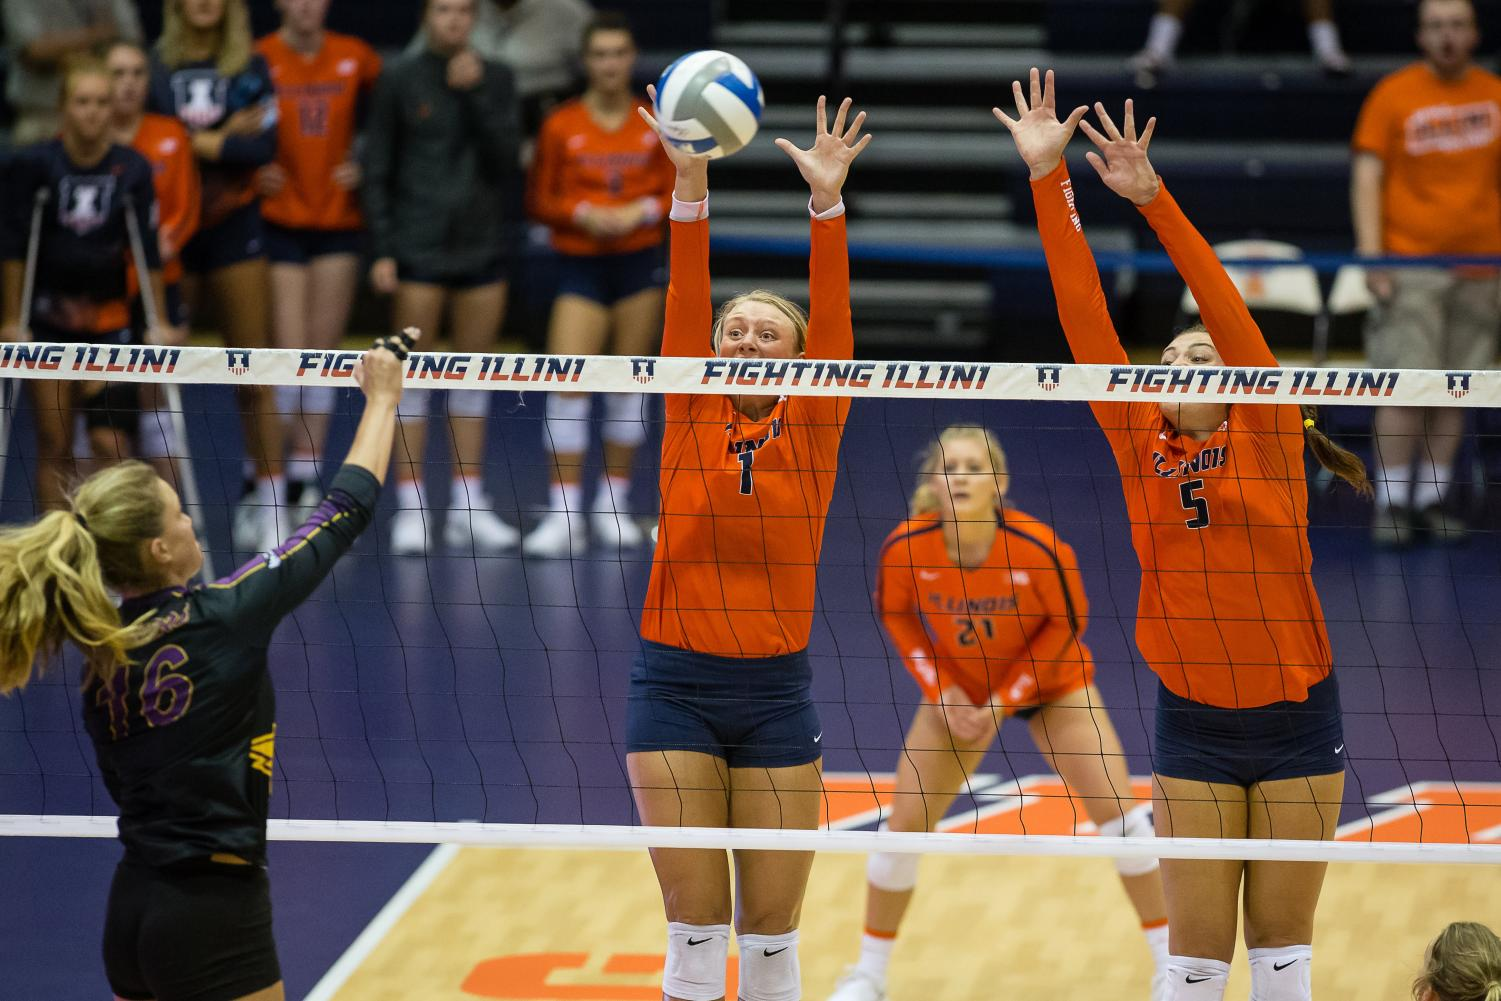 Illinois sweeps Maryland before heading on road trip | The ...